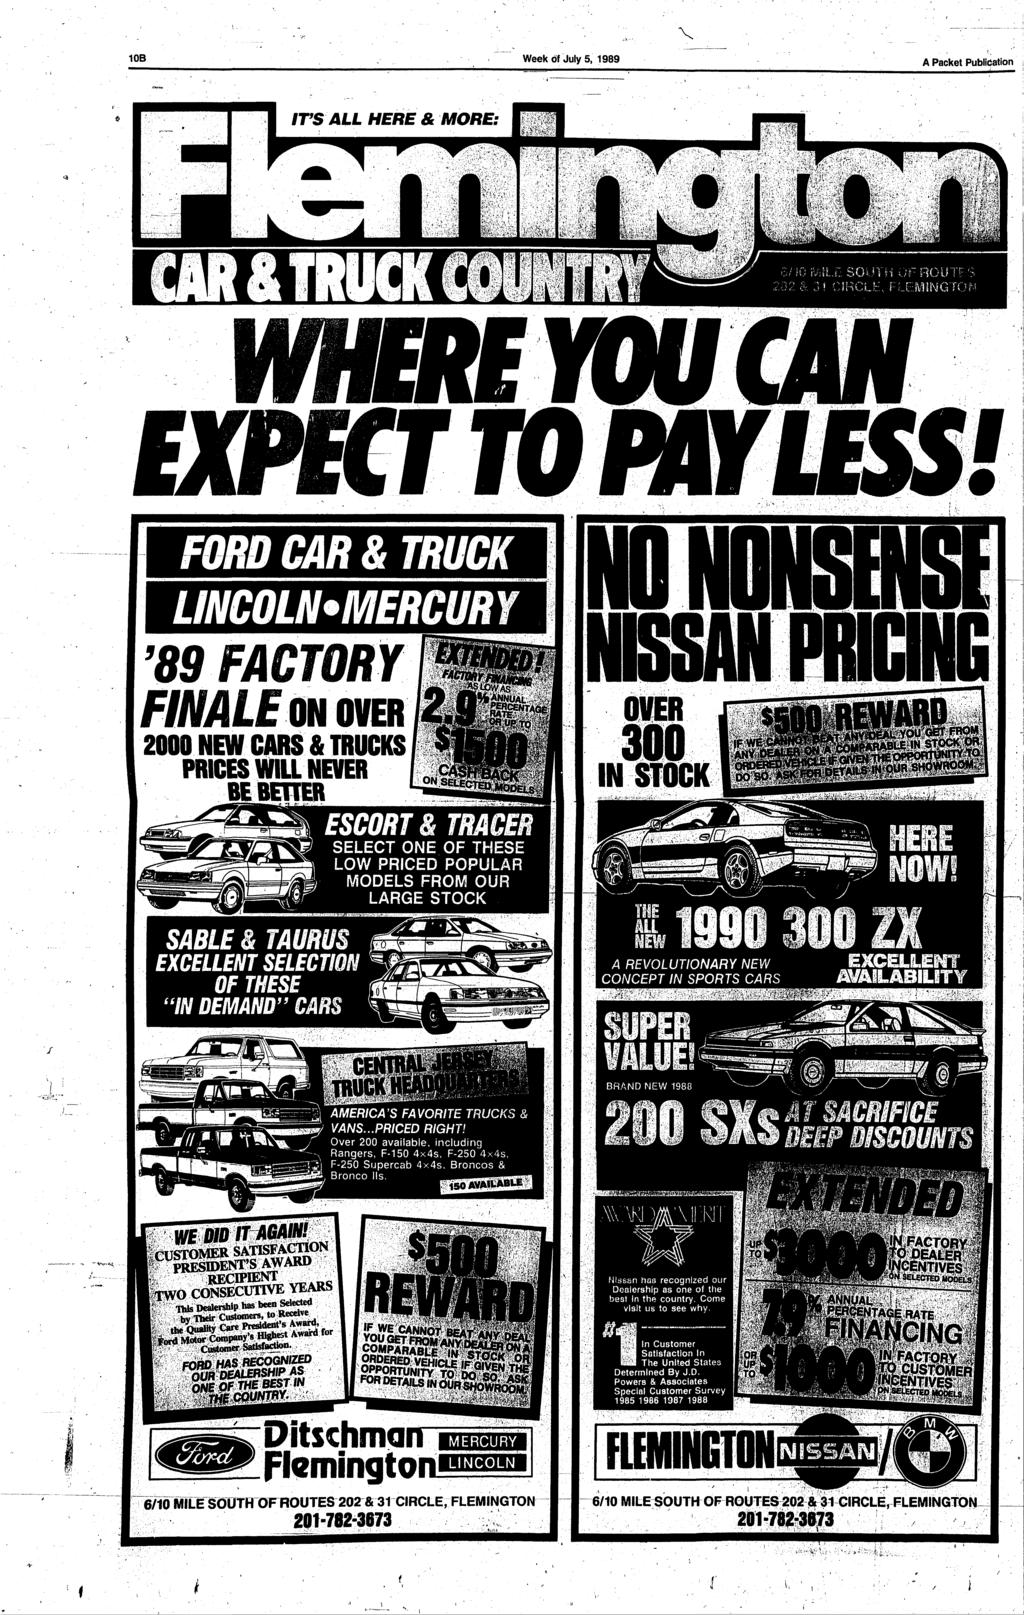 In news record the princeton packet inc am rights reserved pdf 0b week df july 5 989 a packet publication ford car truck lincoln fandeluxe Gallery